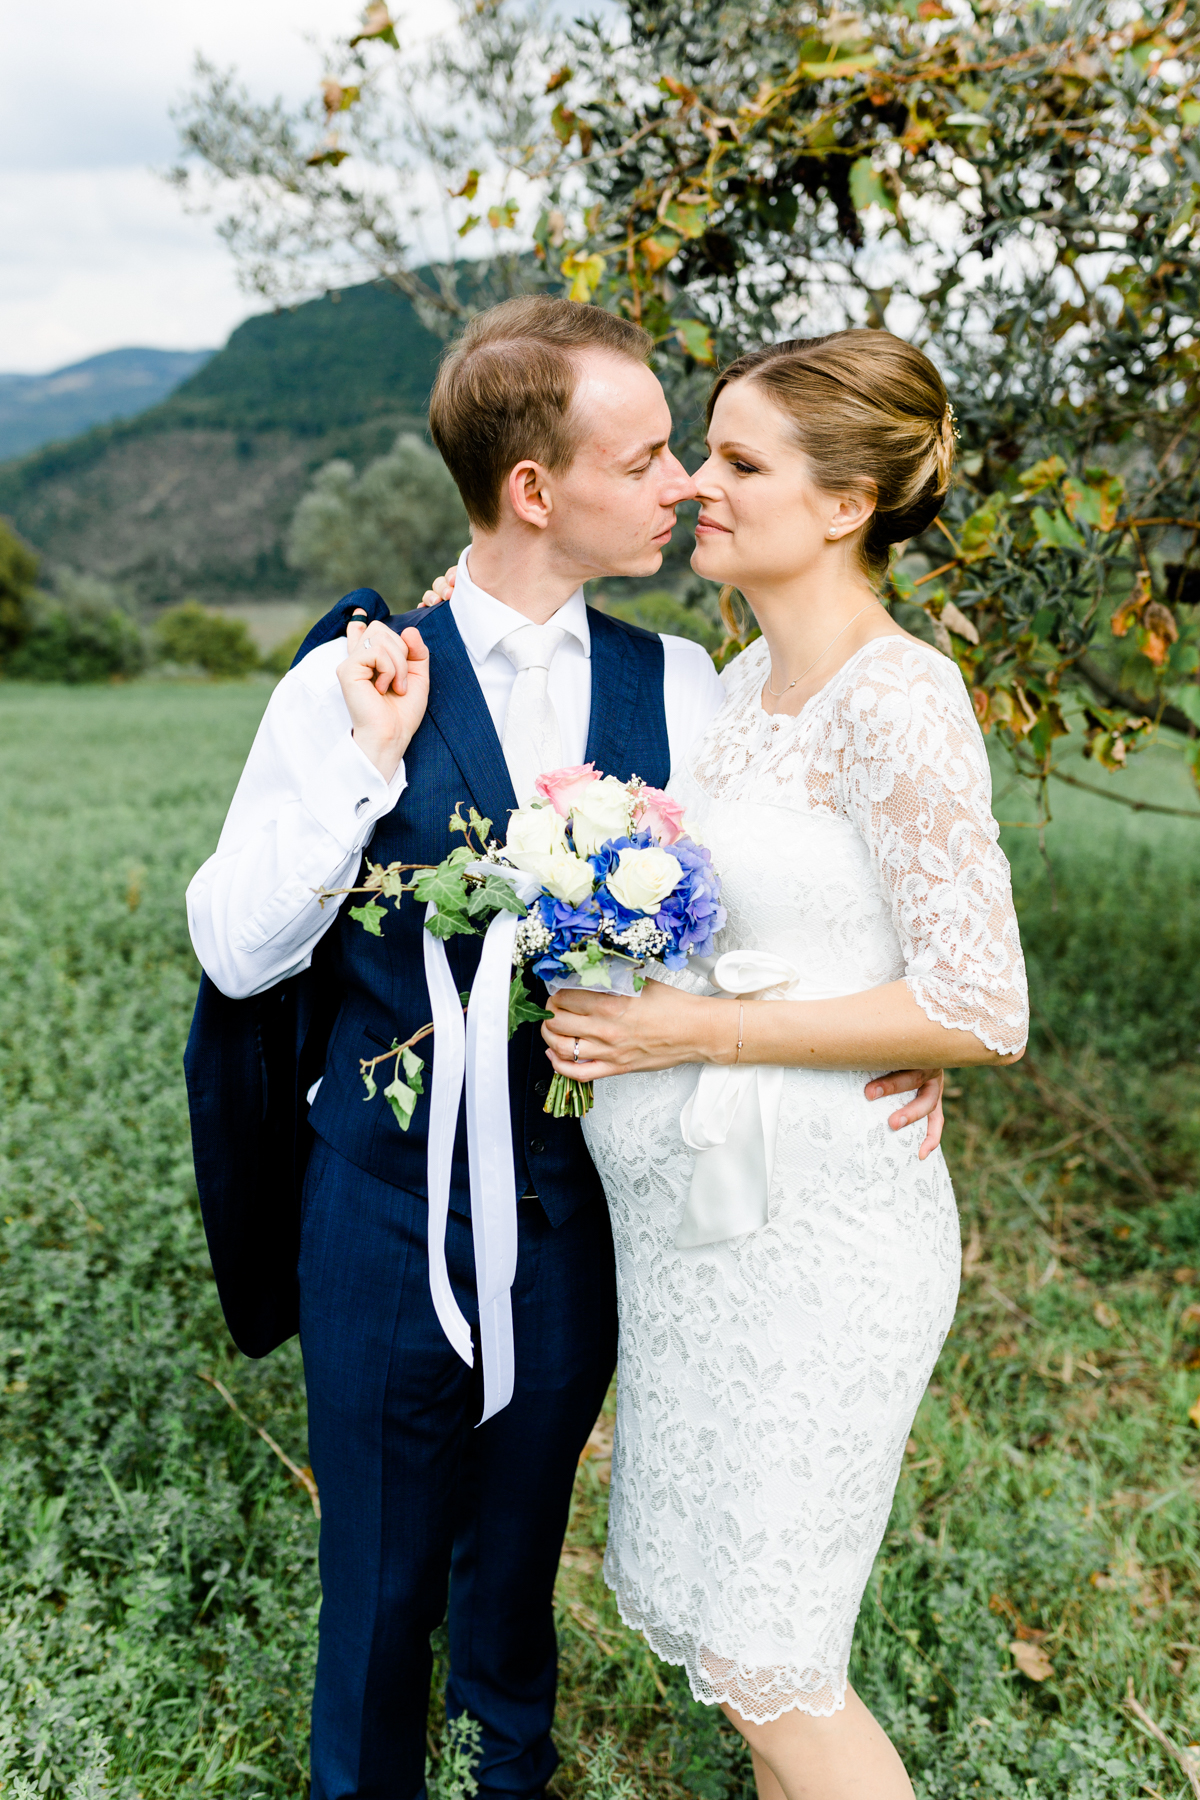 Romy_Alfons_Destination_Wedding_Tuscany_Toskana_Italy_me_him_photography-345